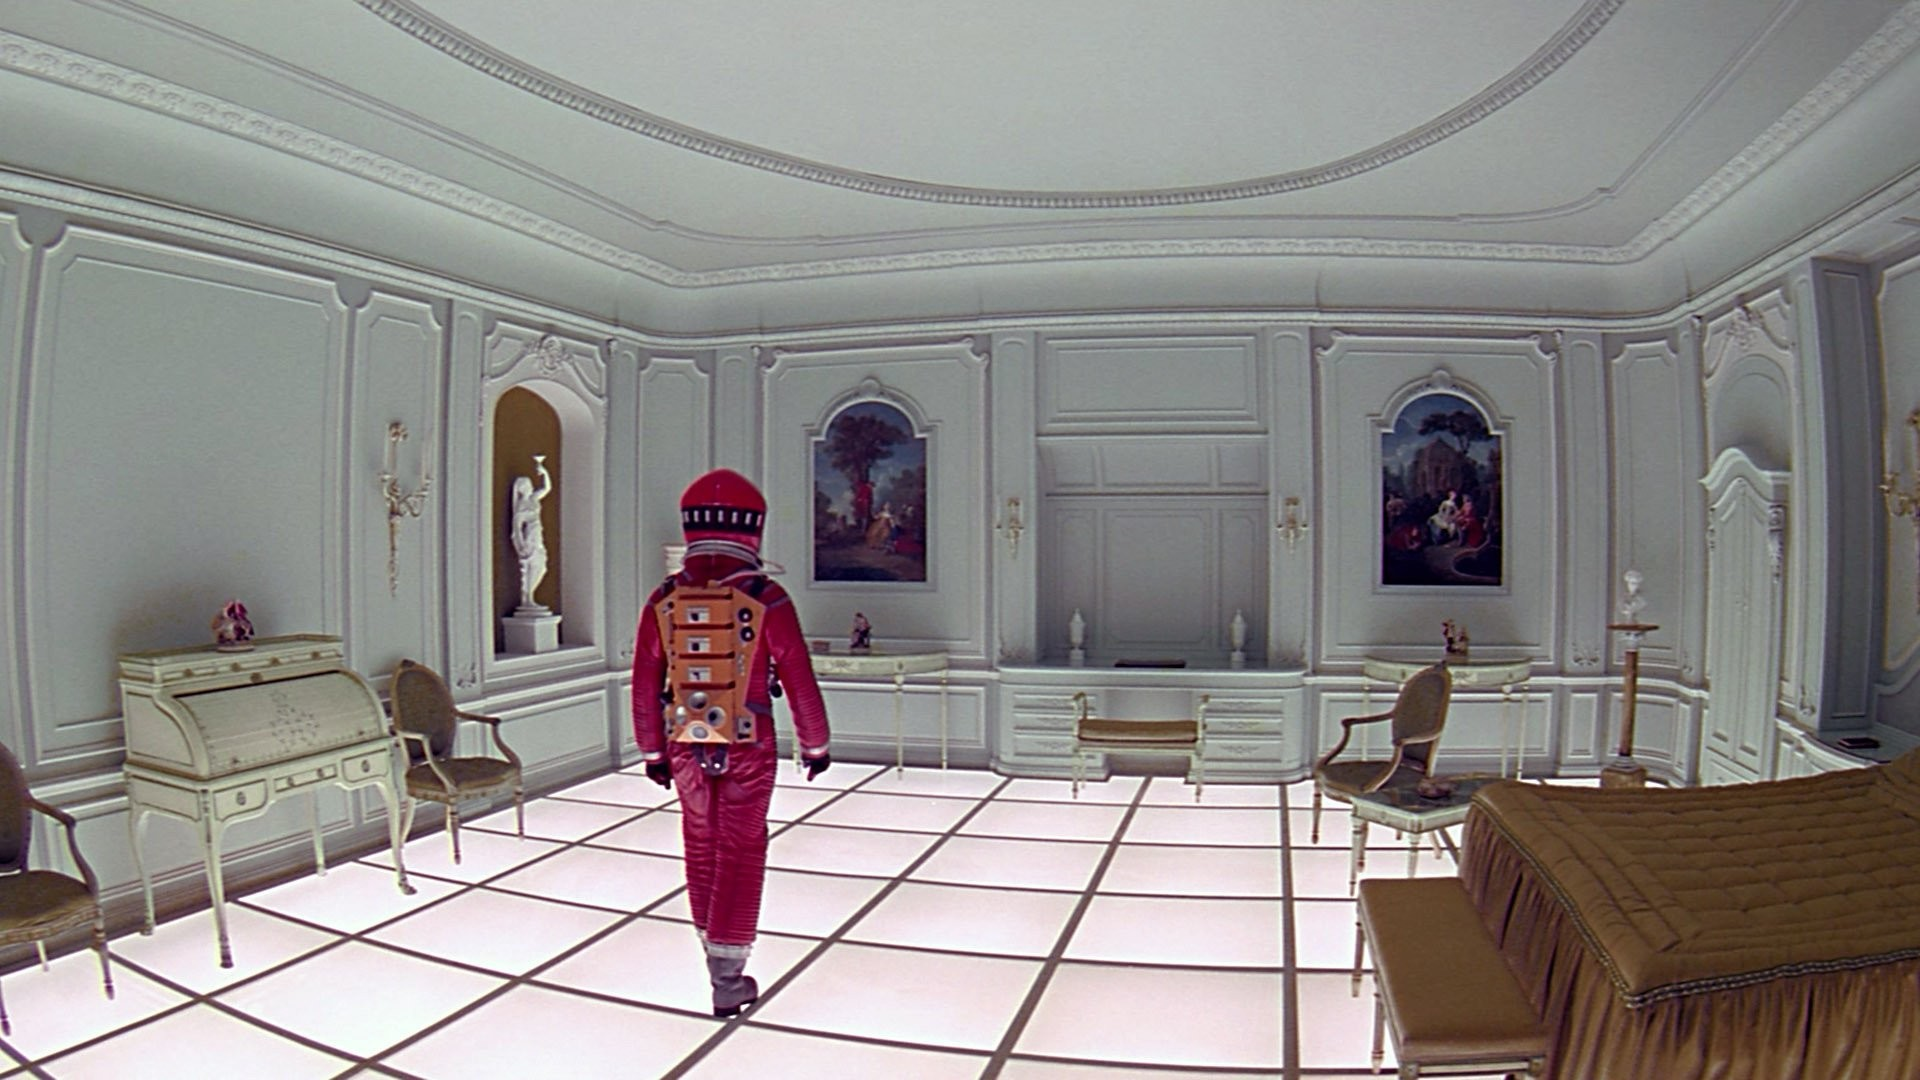 1920x1080 Movies 2001: A Space Odyssey wallpaper |  | 264261 | WallpaperUP